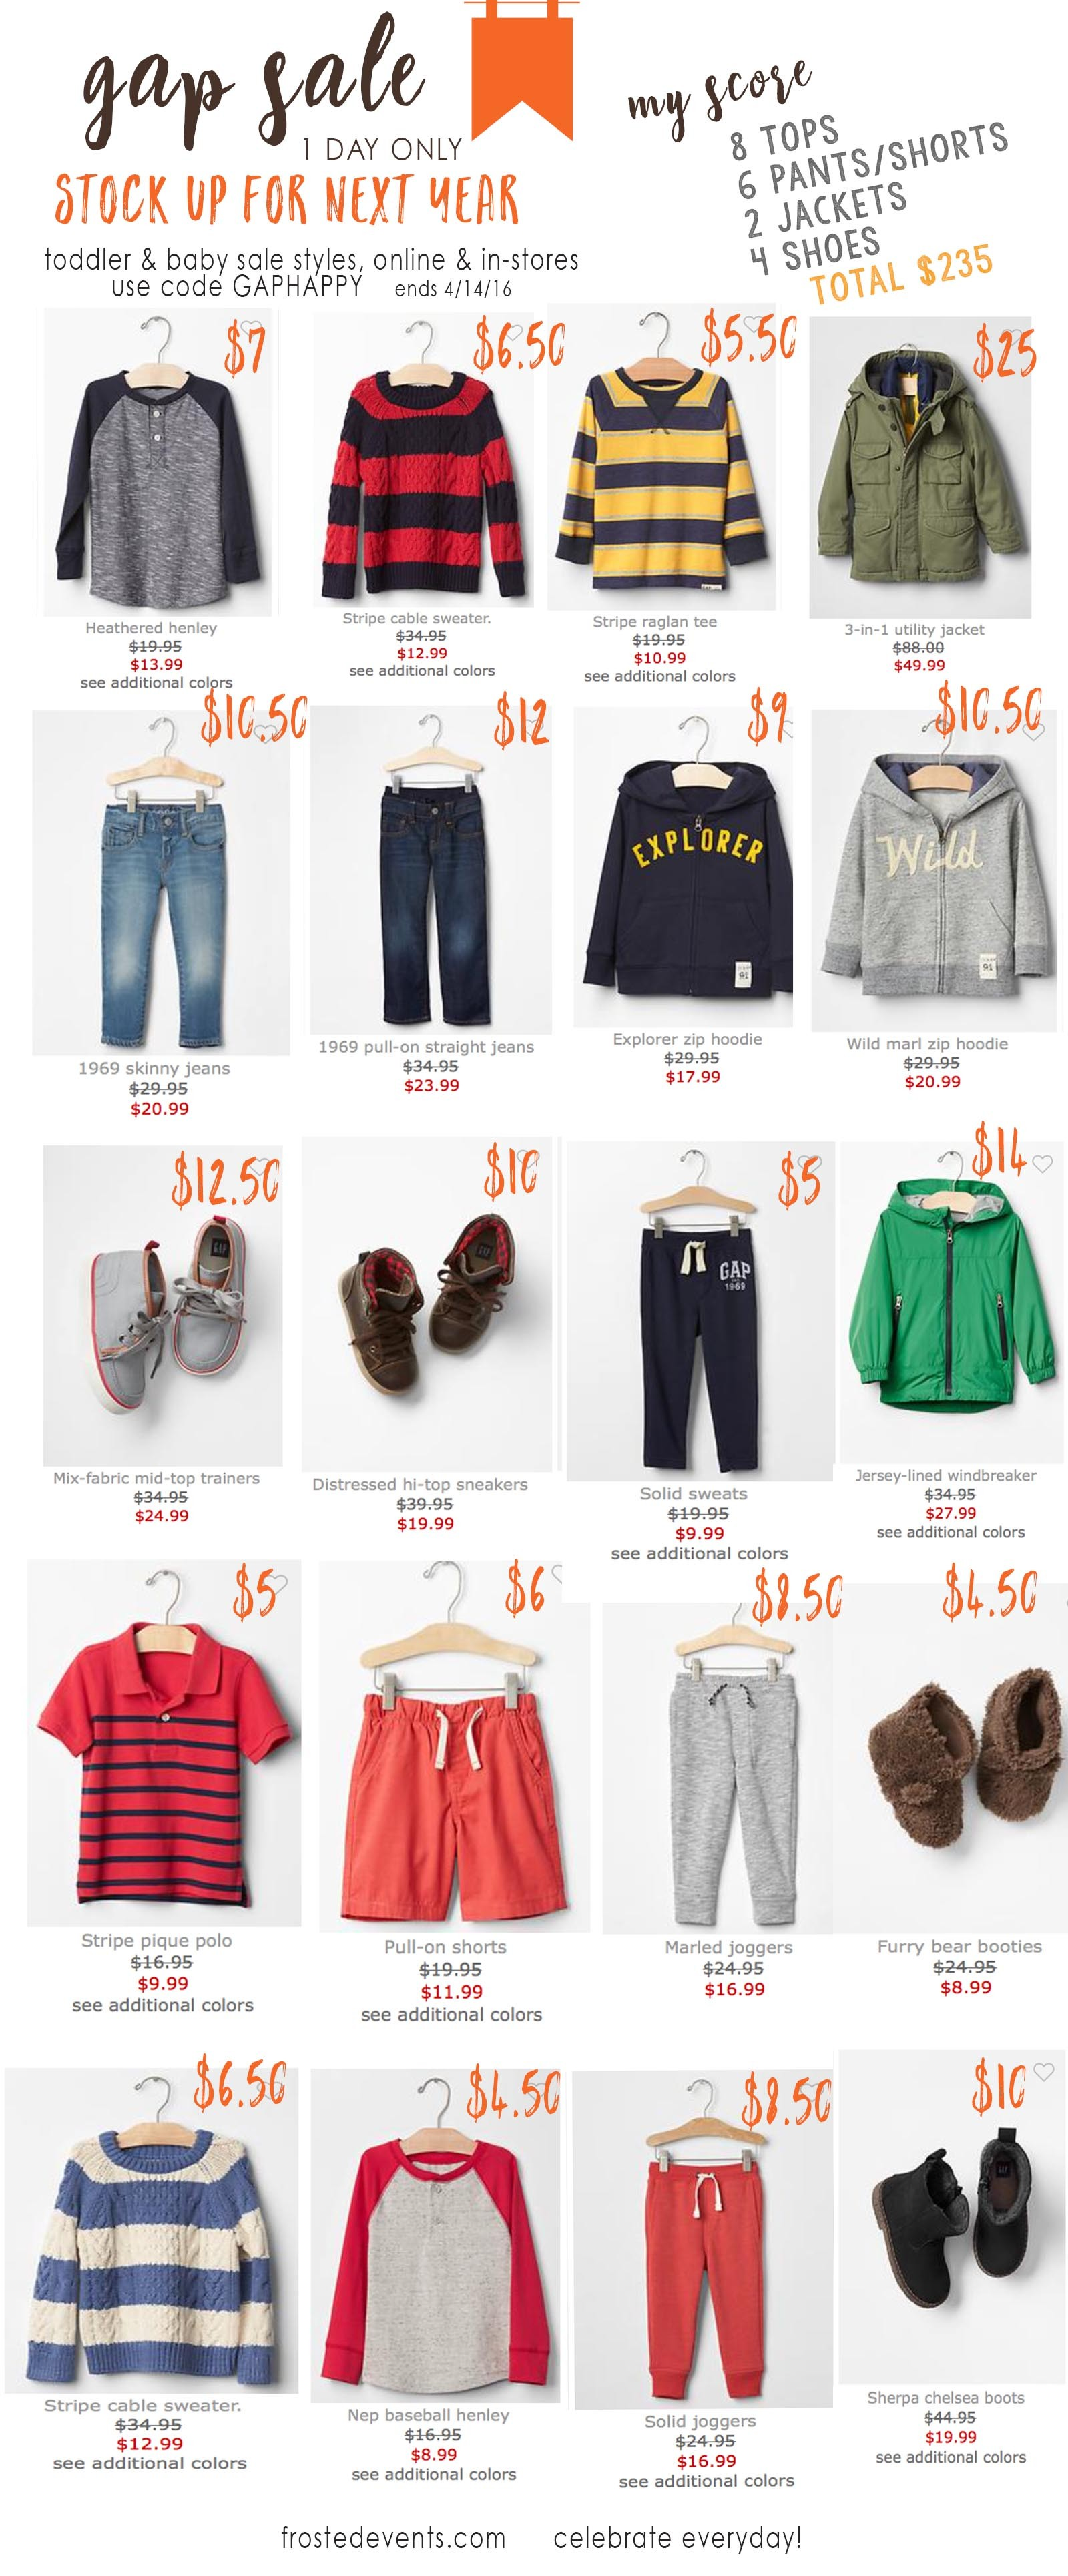 det billigaste detaljerade bilder bra ut x How to Score Baby and Toddler Clothes for Cheap